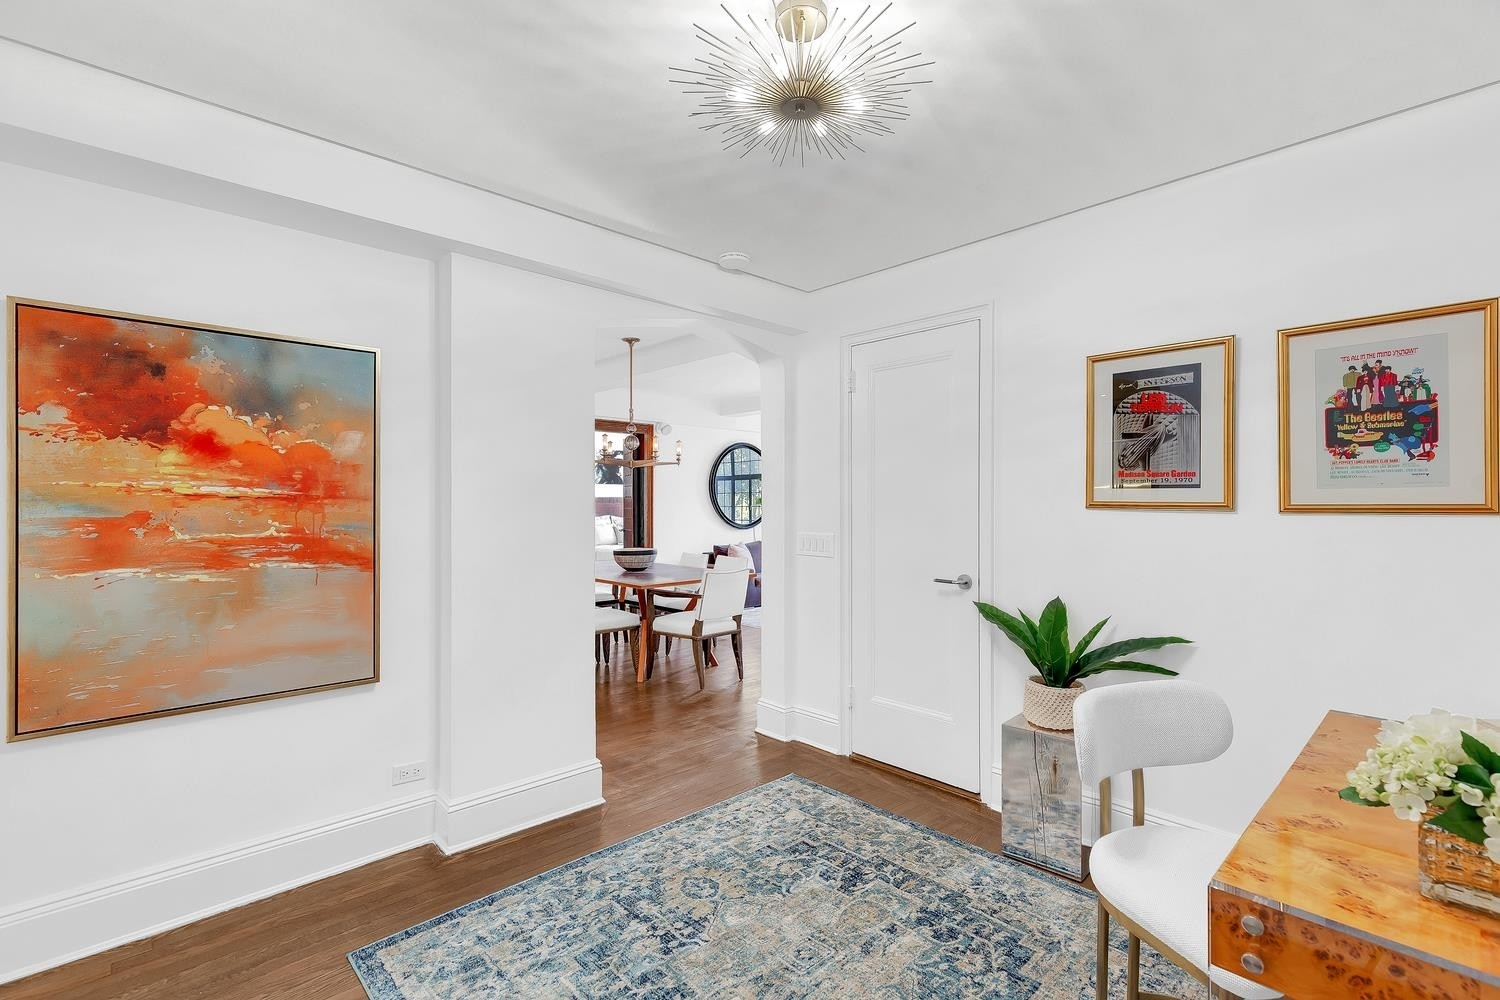 4. Co-op Properties for Sale at GRAMERCY OWNERS LTD, 44 GRAMERCY PARK N, 4C Gramercy Park, New York, NY 10010